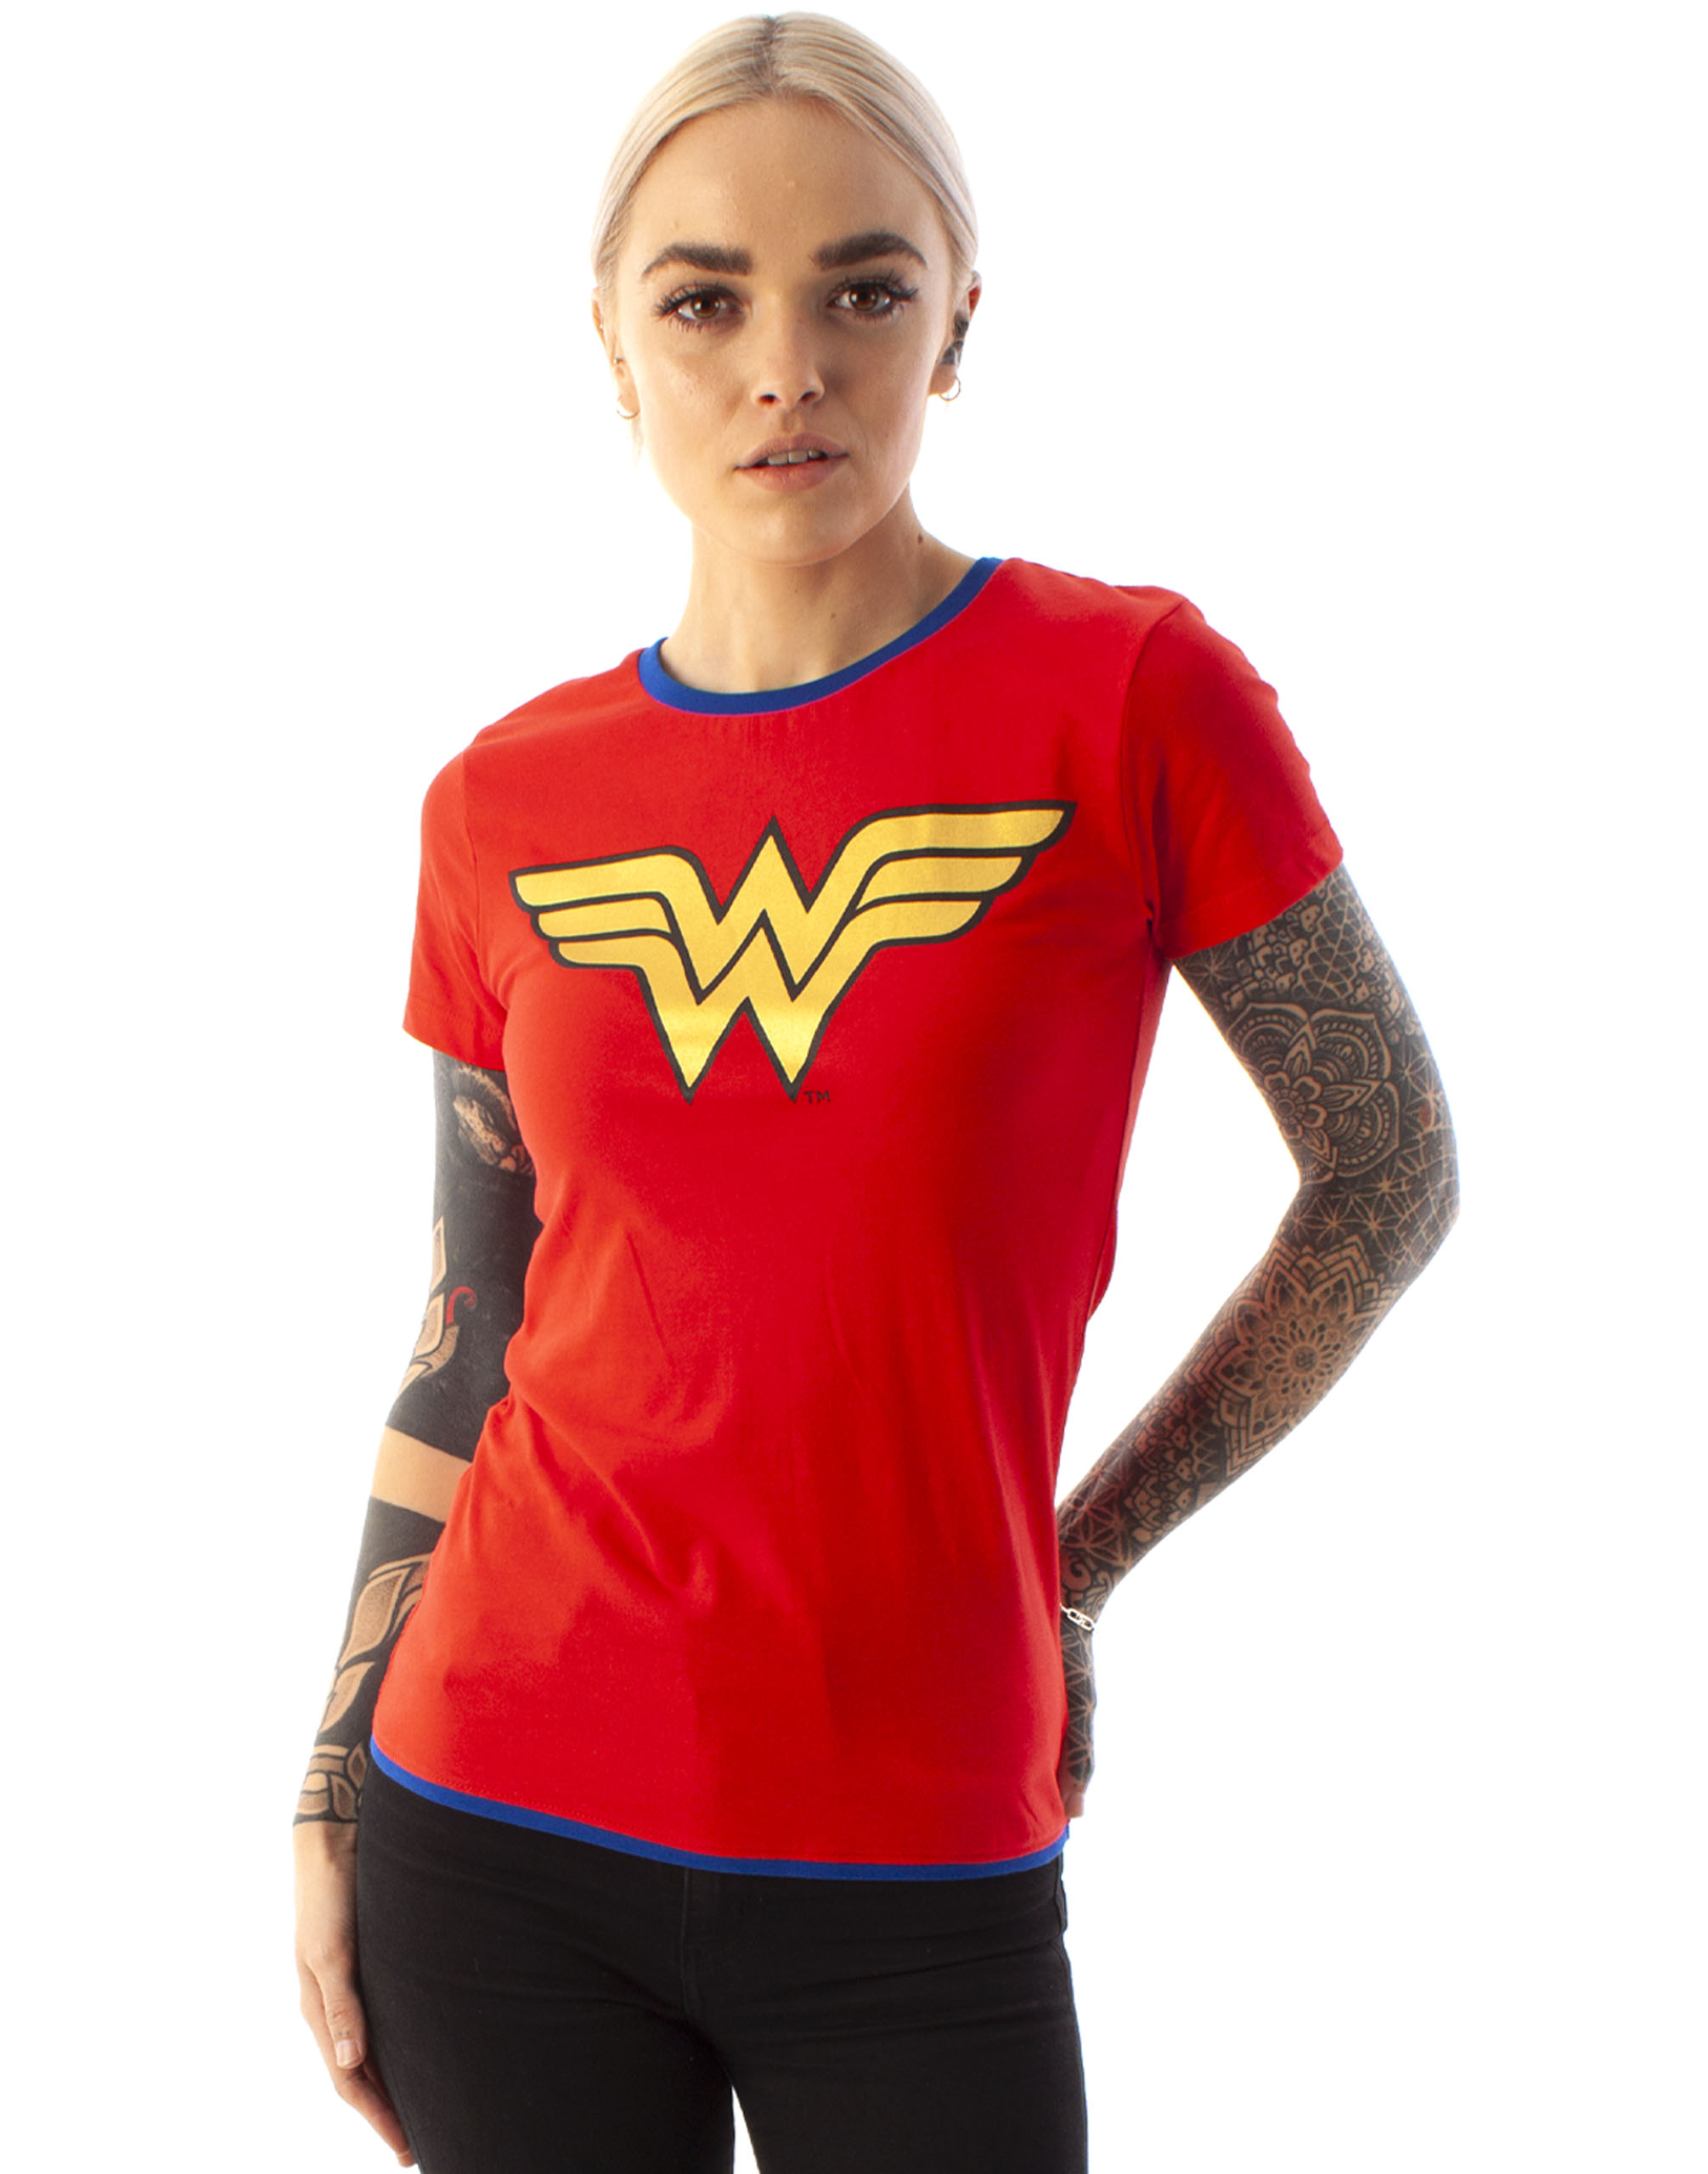 Wonder-Woman-DC-Comics-Metallic-Gold-Logo-Women-039-s-Red-Superhero-T-Shirt thumbnail 9